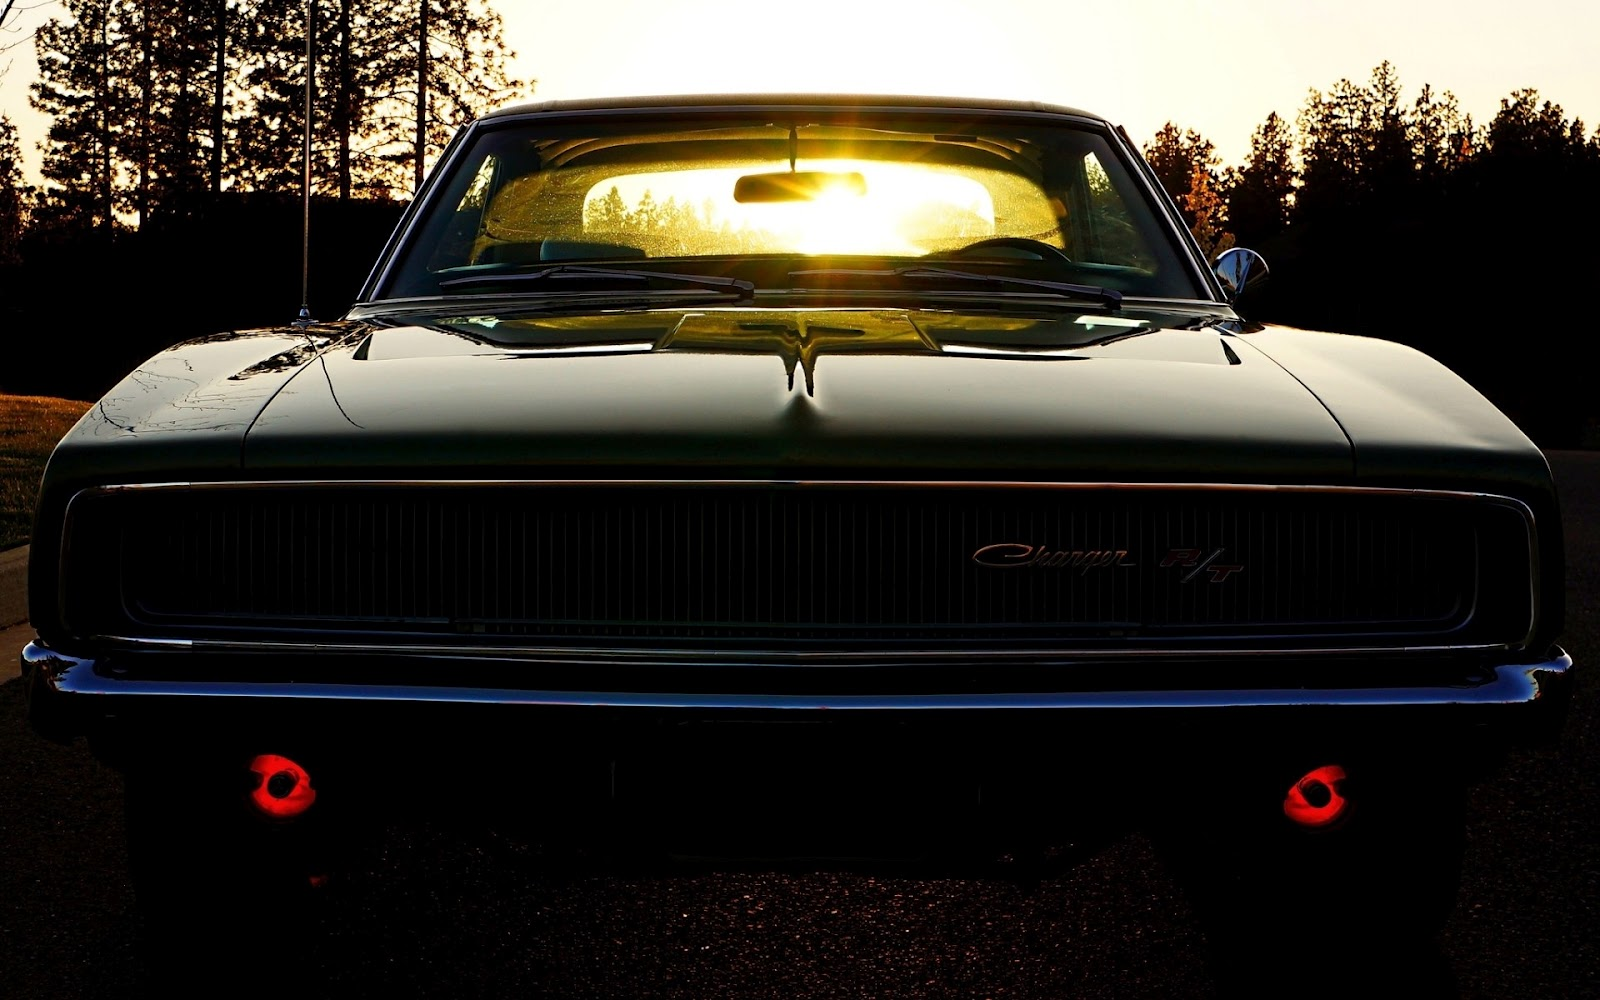 Dodge Challenger Muscle Car Awesome Lighting Photograpy HD Car 1600x1000